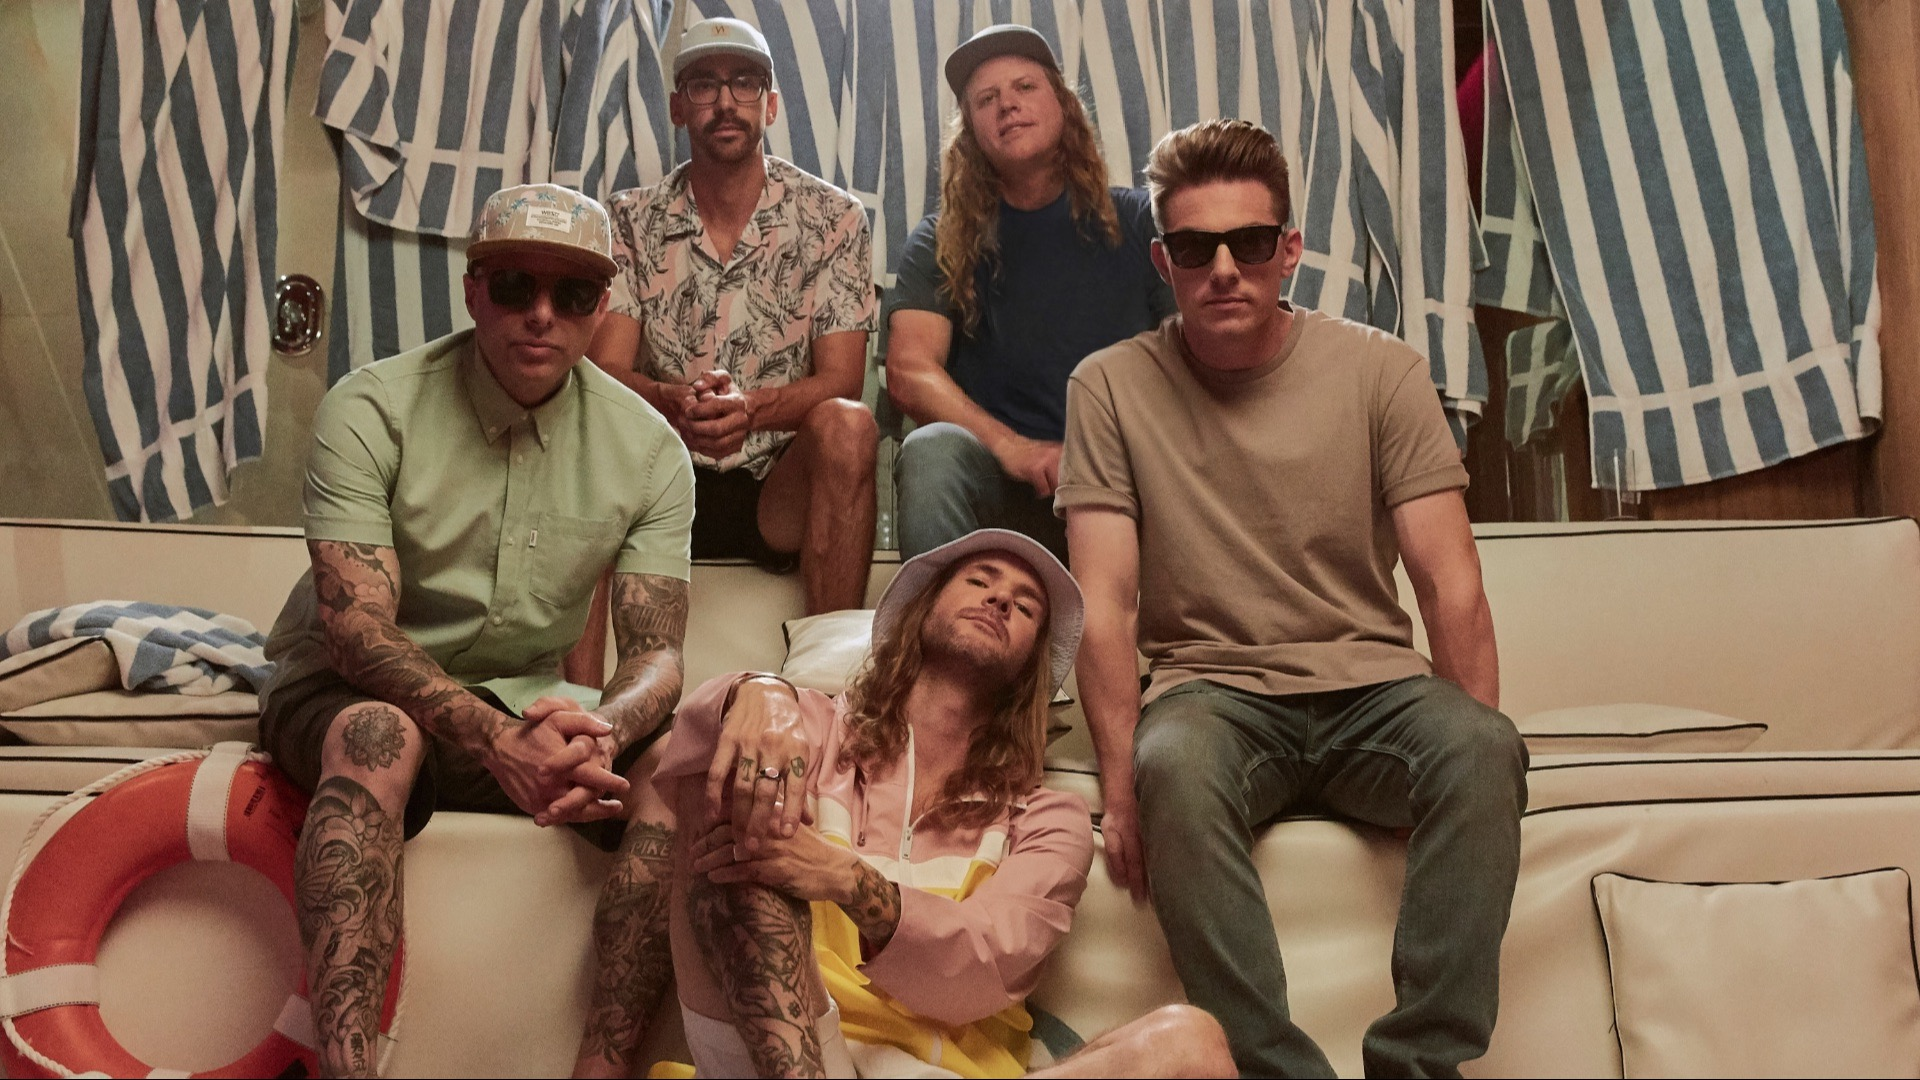 The band Dirty Heads.